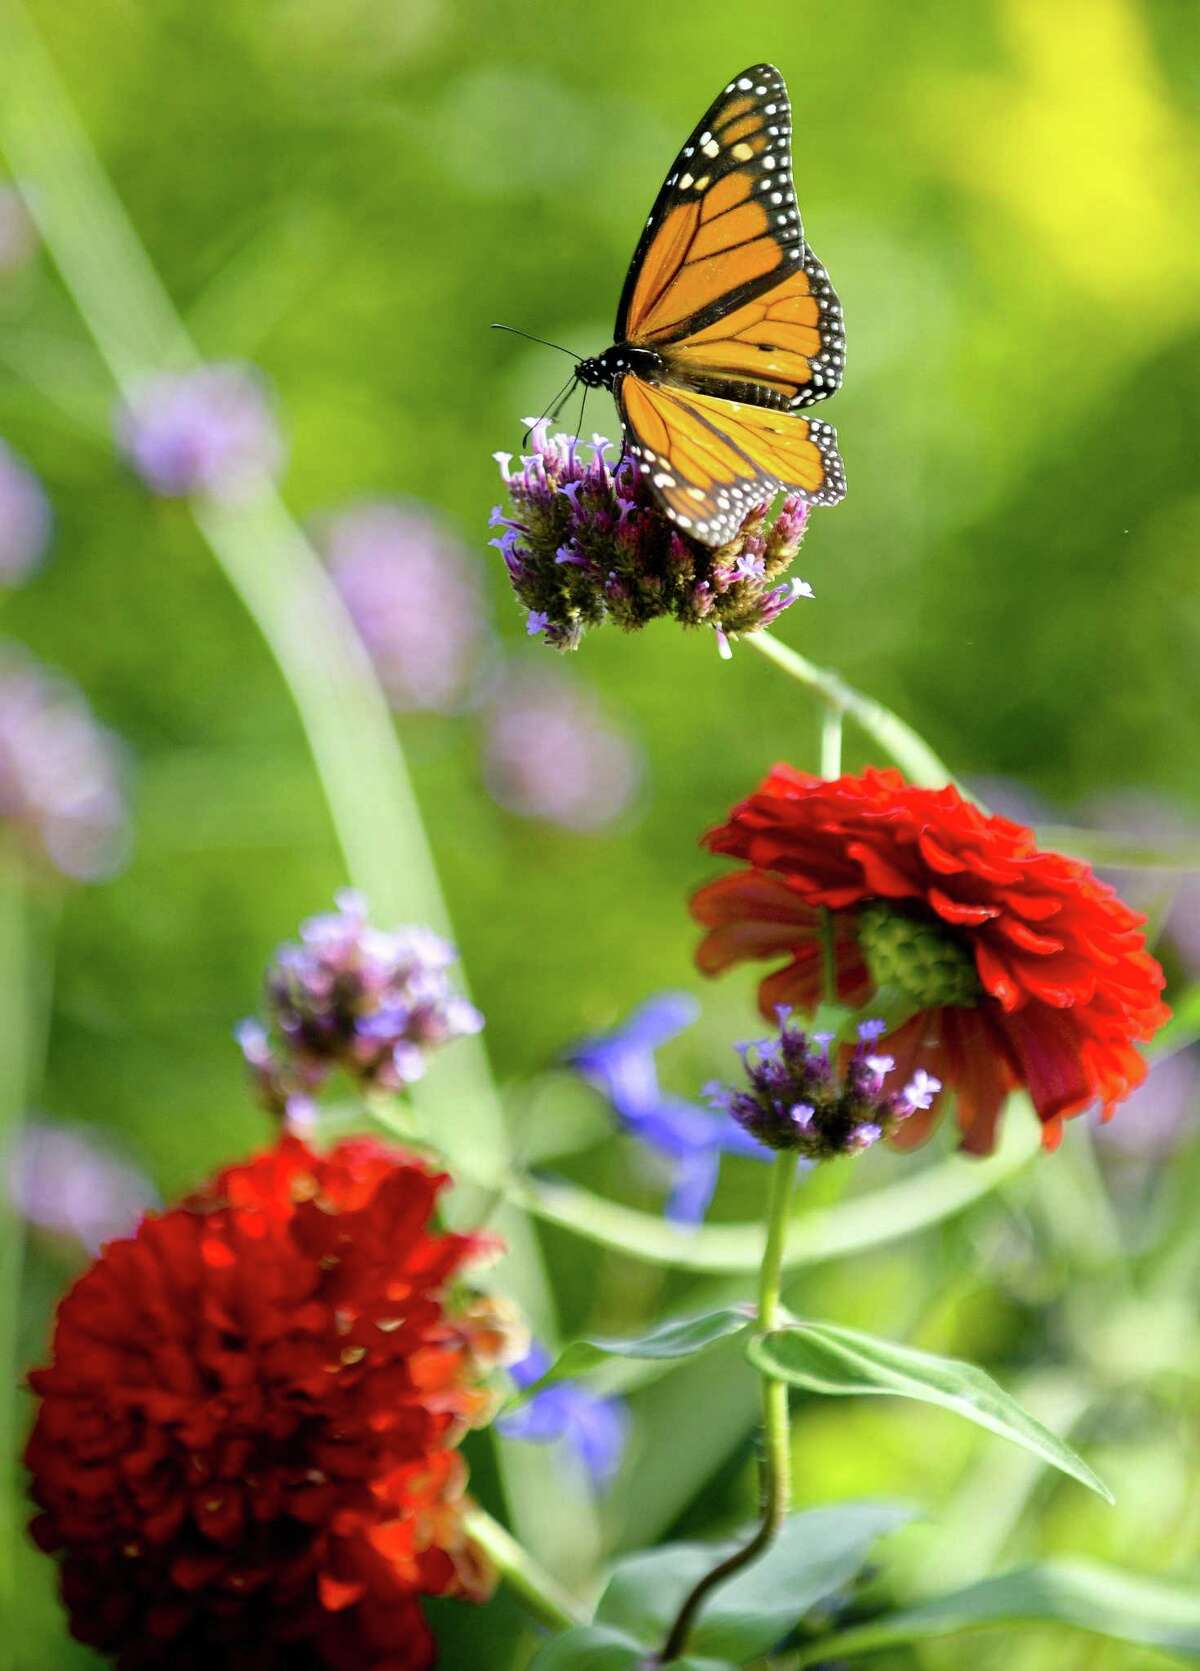 A Monarch Butterfly spreads its wings while perching on a flower at the Cove Island Wildlife Sanctuary Butterfly Garden on Sept. 1, 2018 in Stamford, Connecticut.